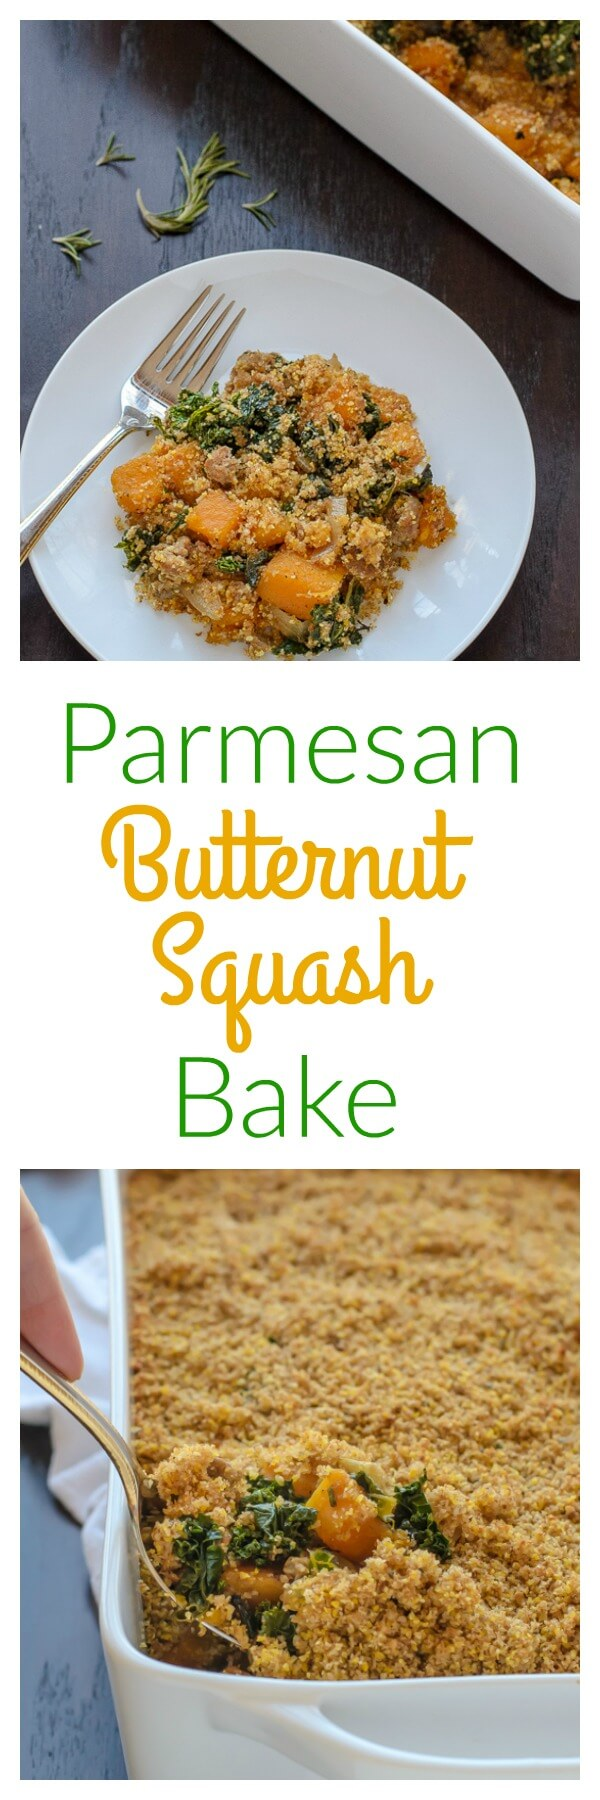 Parmesan Butternut Squash Bake. Seasonal ingredients shine in this delicious and easy-to-make casserole!